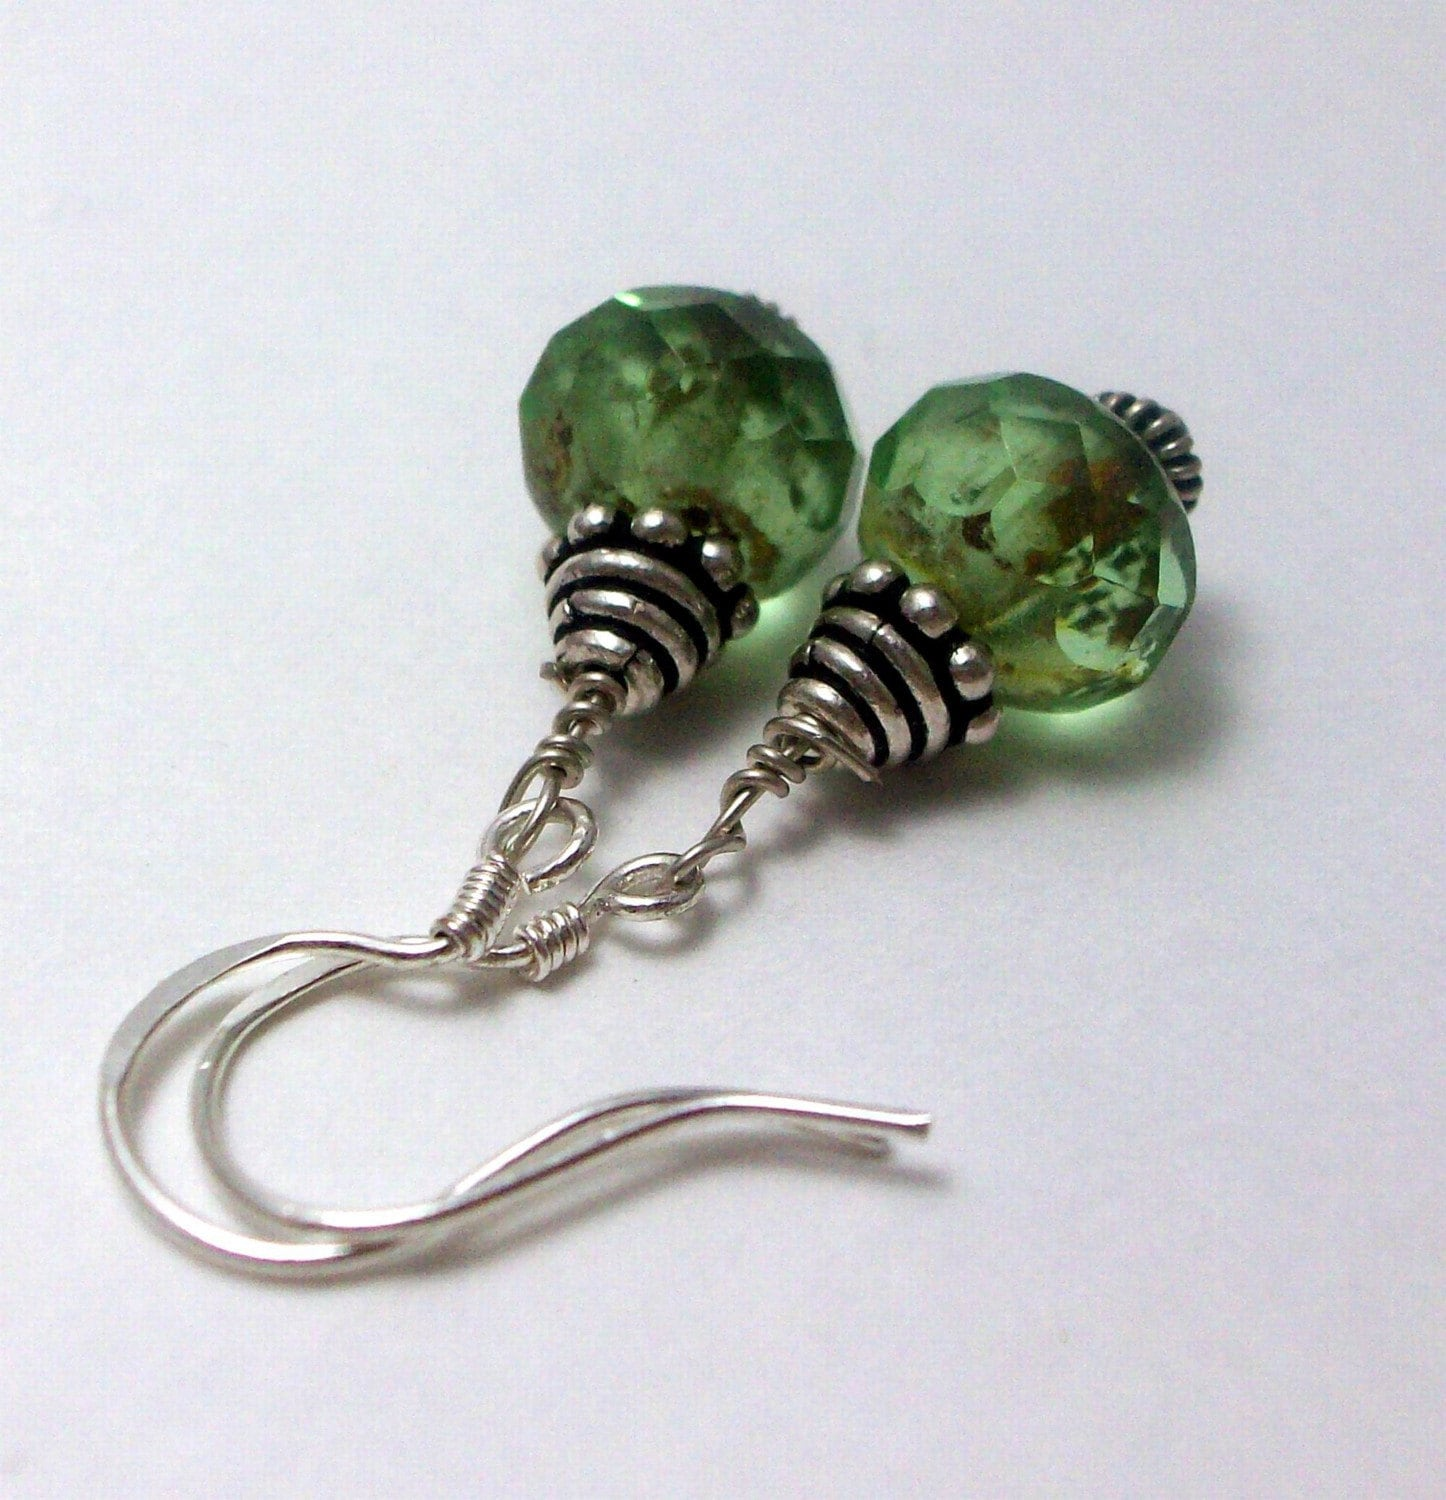 Irish Eyes Czech Glass Bali Sterling Silver Earrings Free Worldwide Shipping